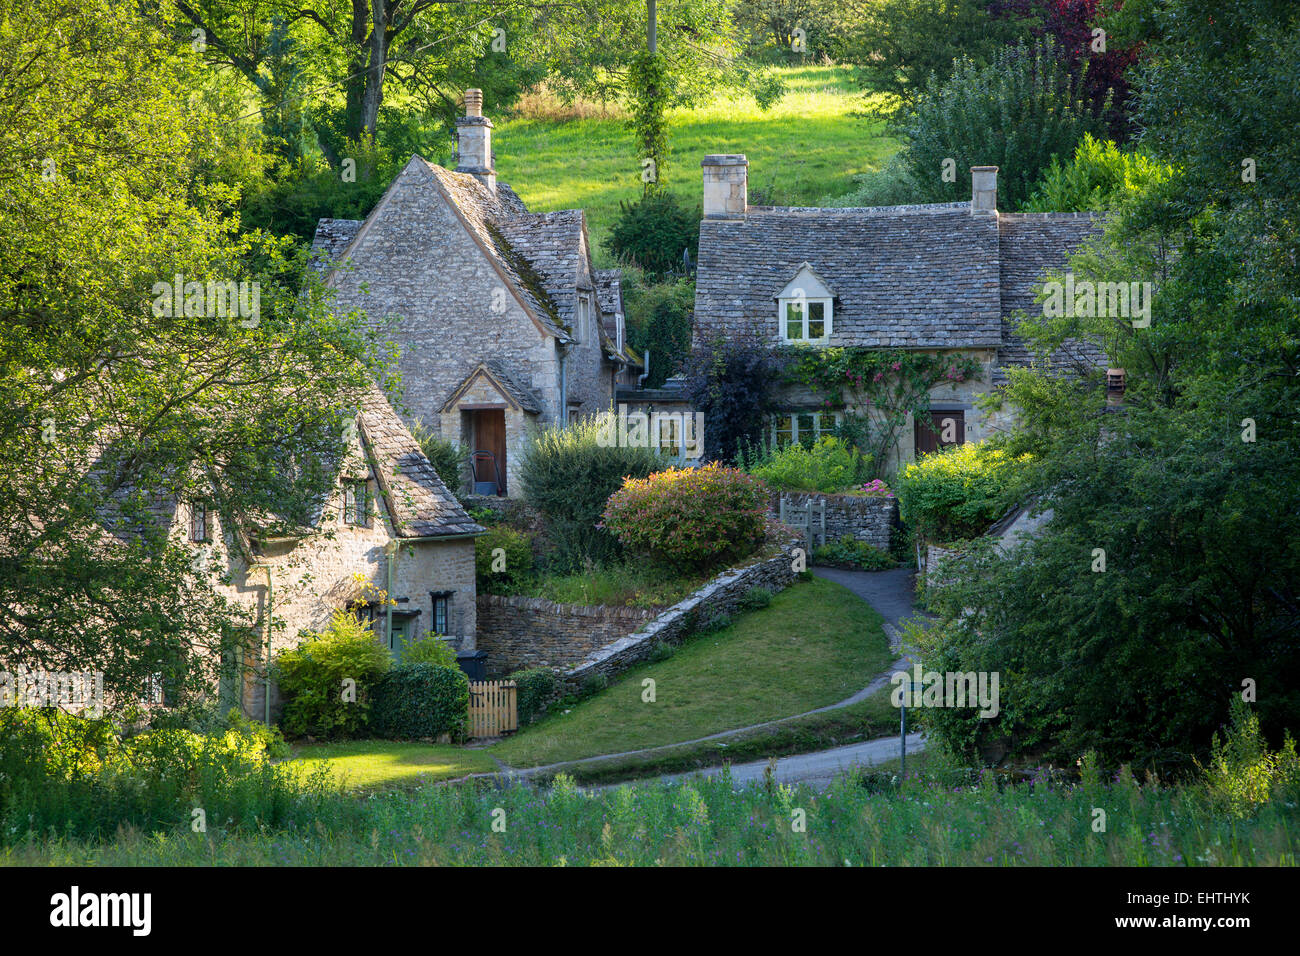 Arlington Row - cottage homes originally built for the local weavers, Bibury, Glocestershire, England Stock Photo